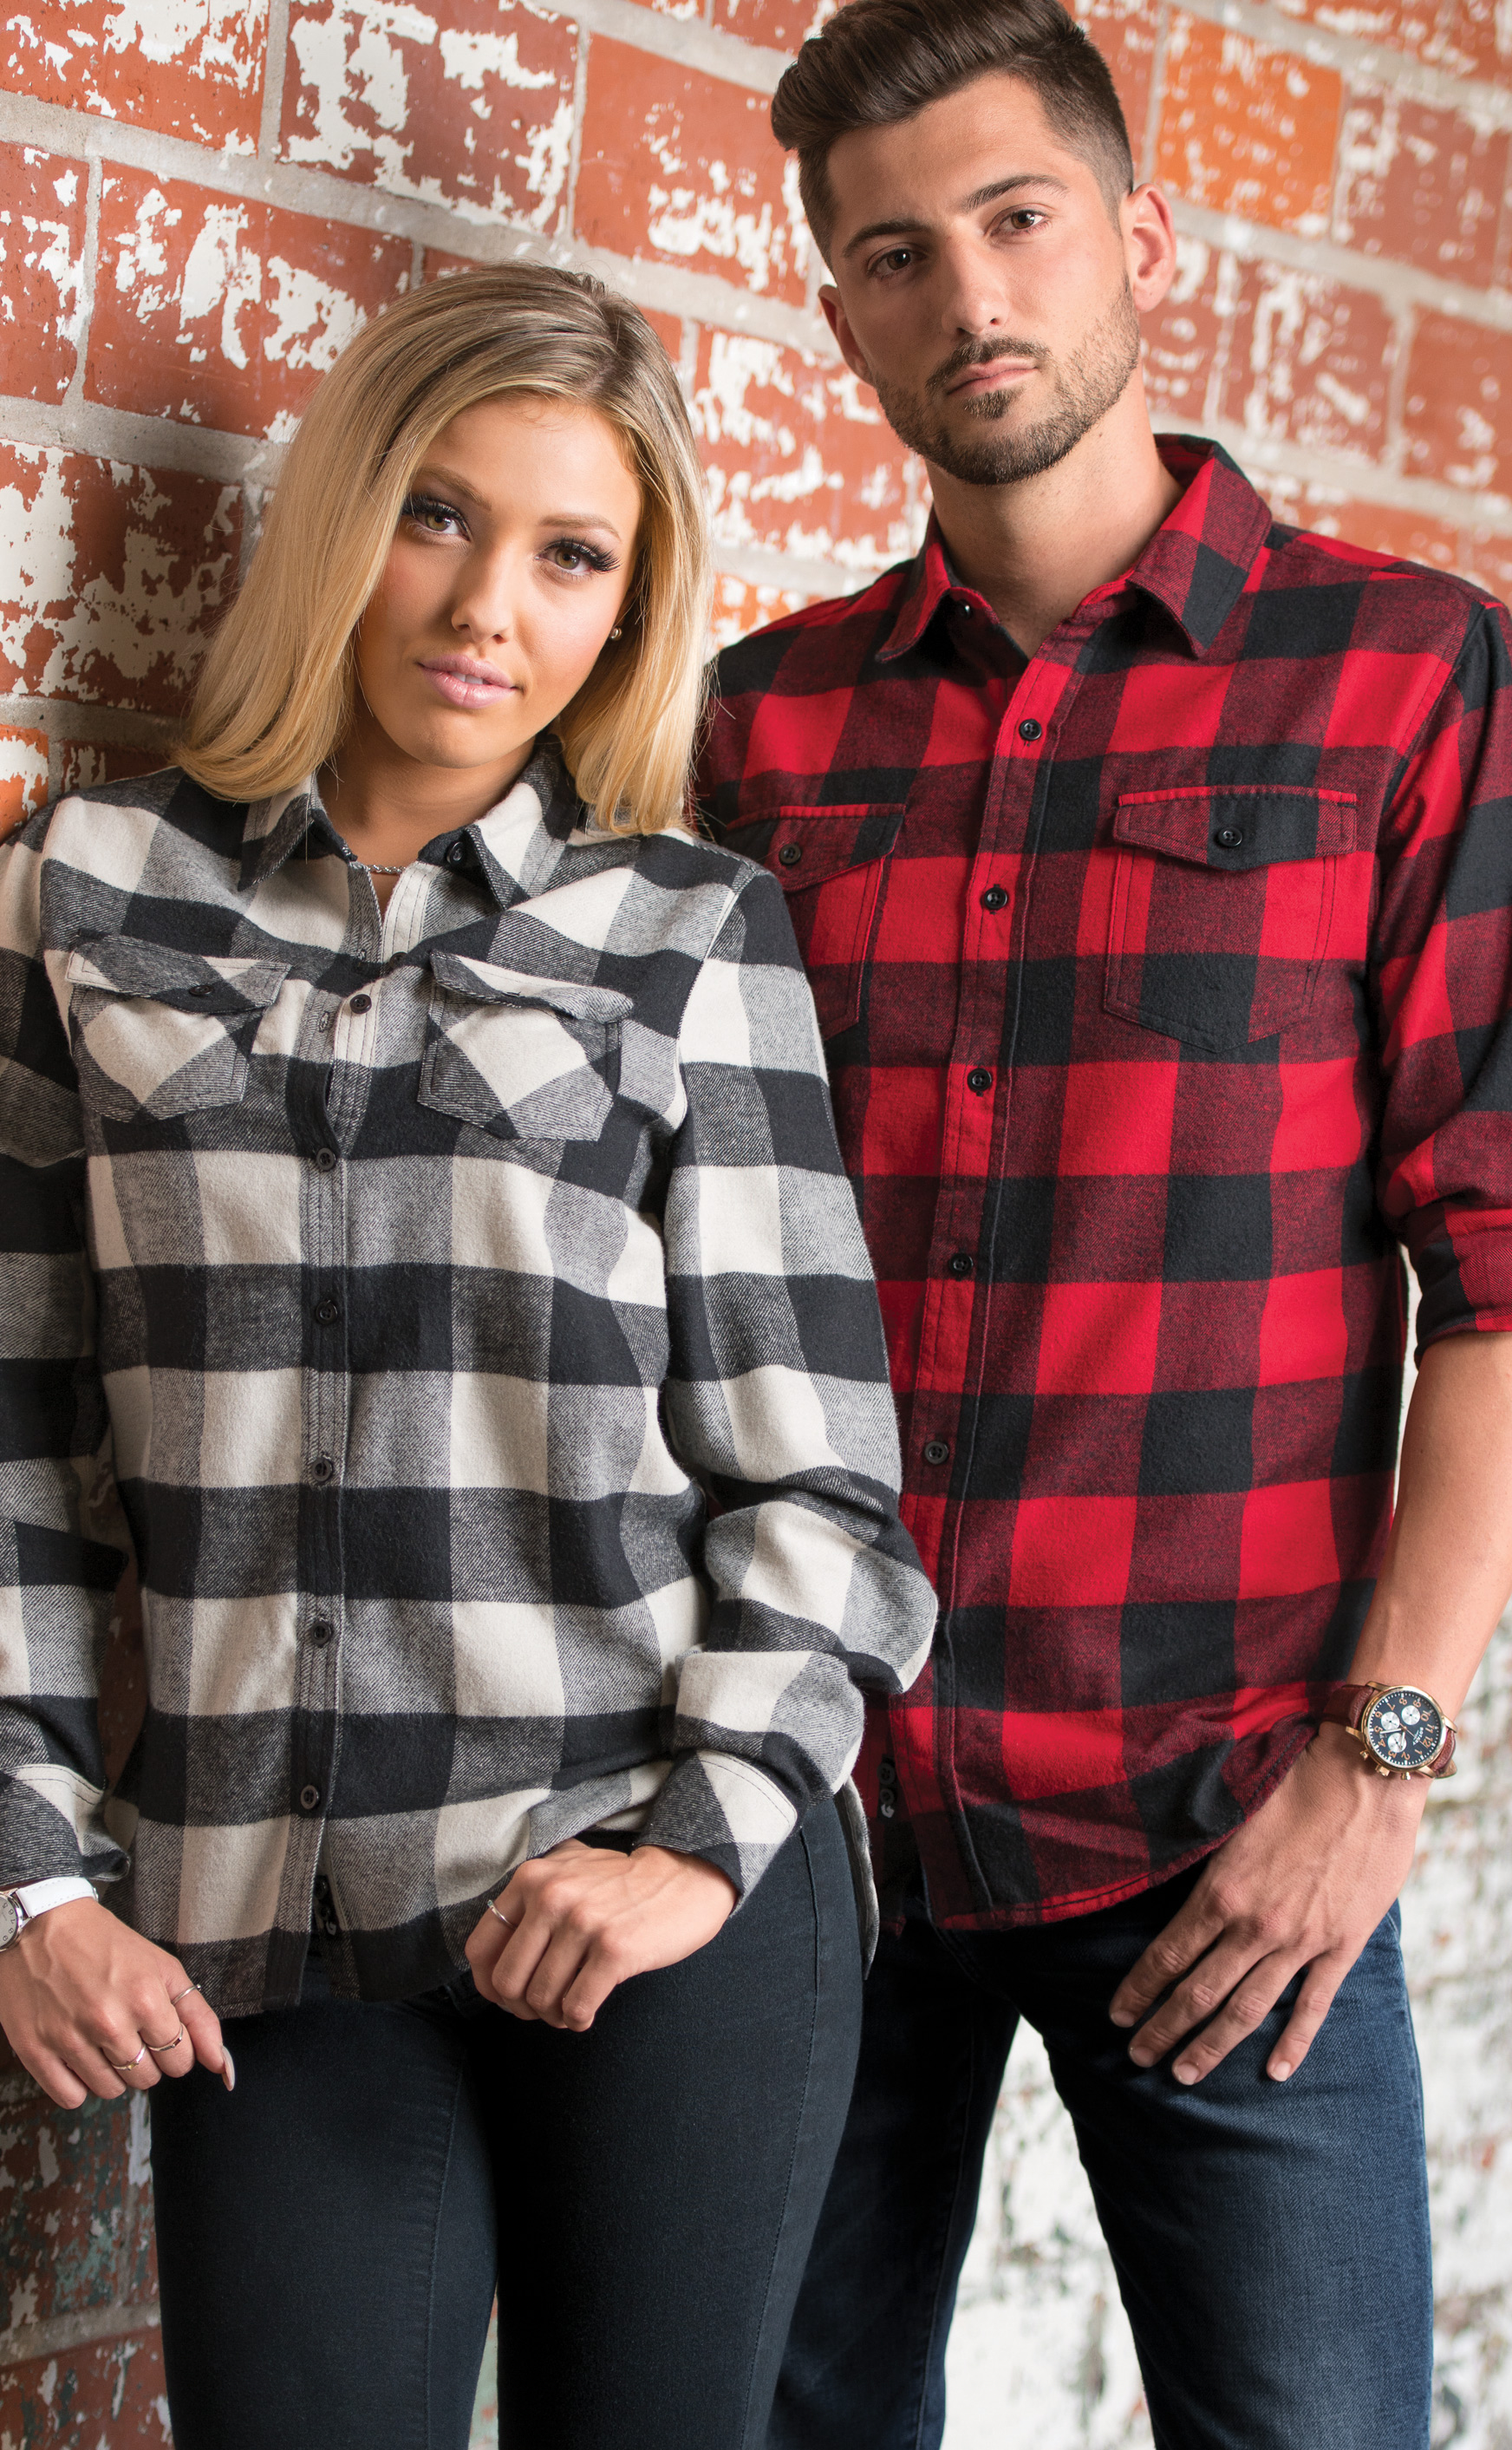 Burnside Women's and Men's Yarn Dyed Long Sleeve Flannel Shirt—5210 & 8210, in Black/Grey and Red/Black Buffalo.